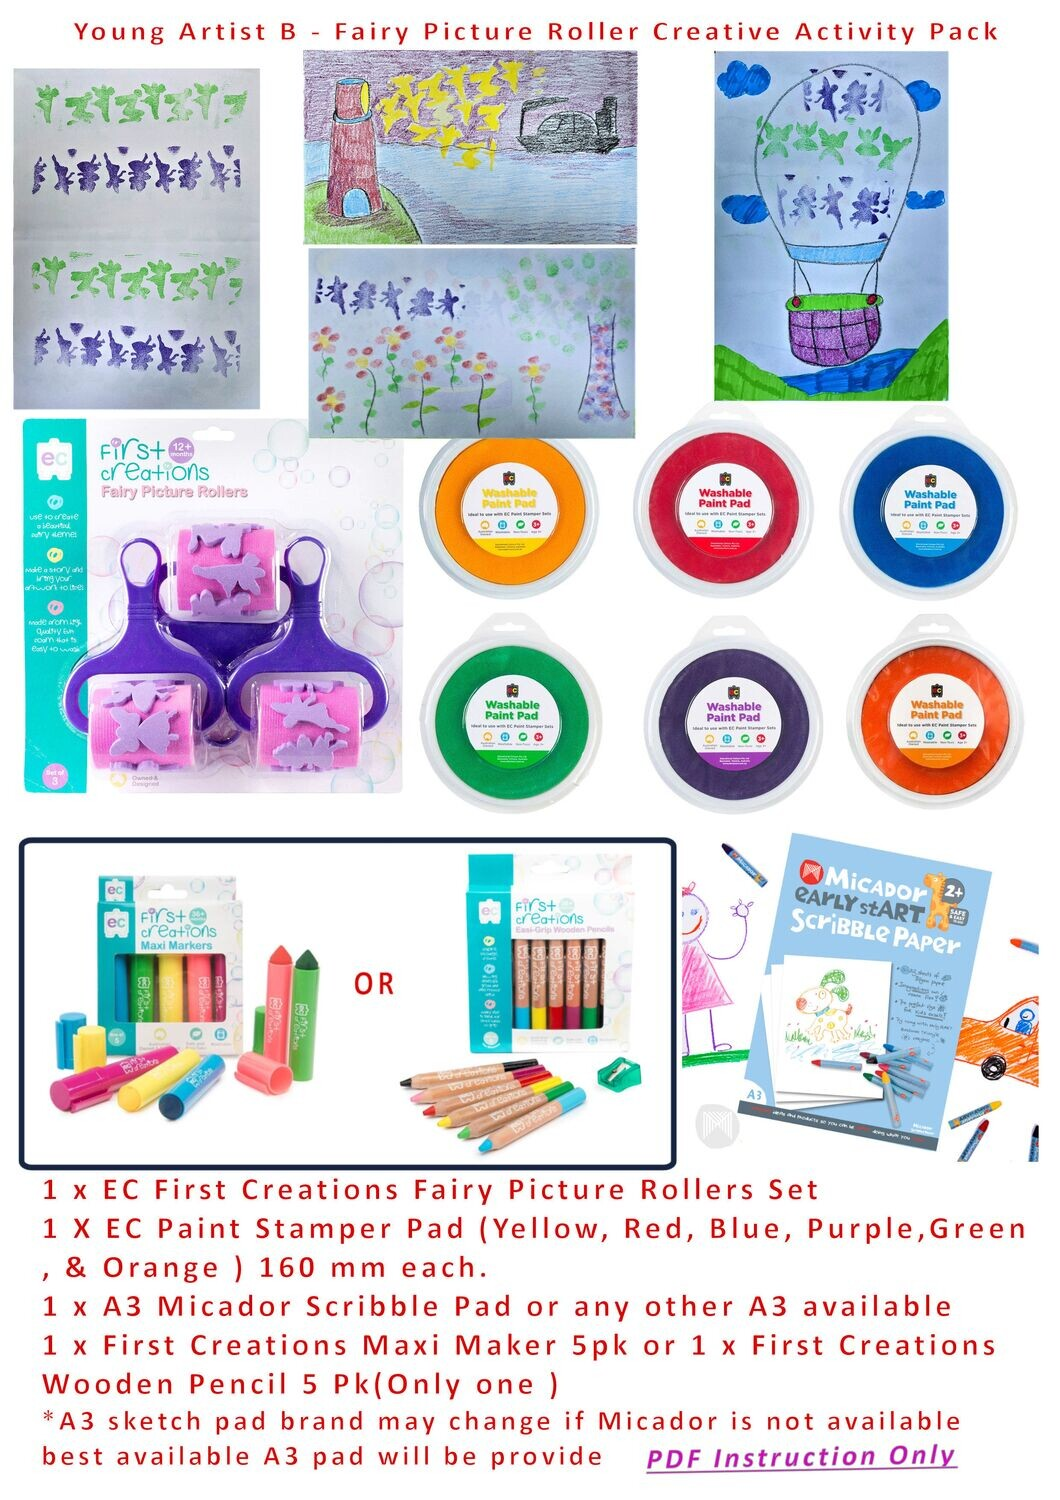 Young Artist B Creative Kids Activity Pack (PDF Instruction)